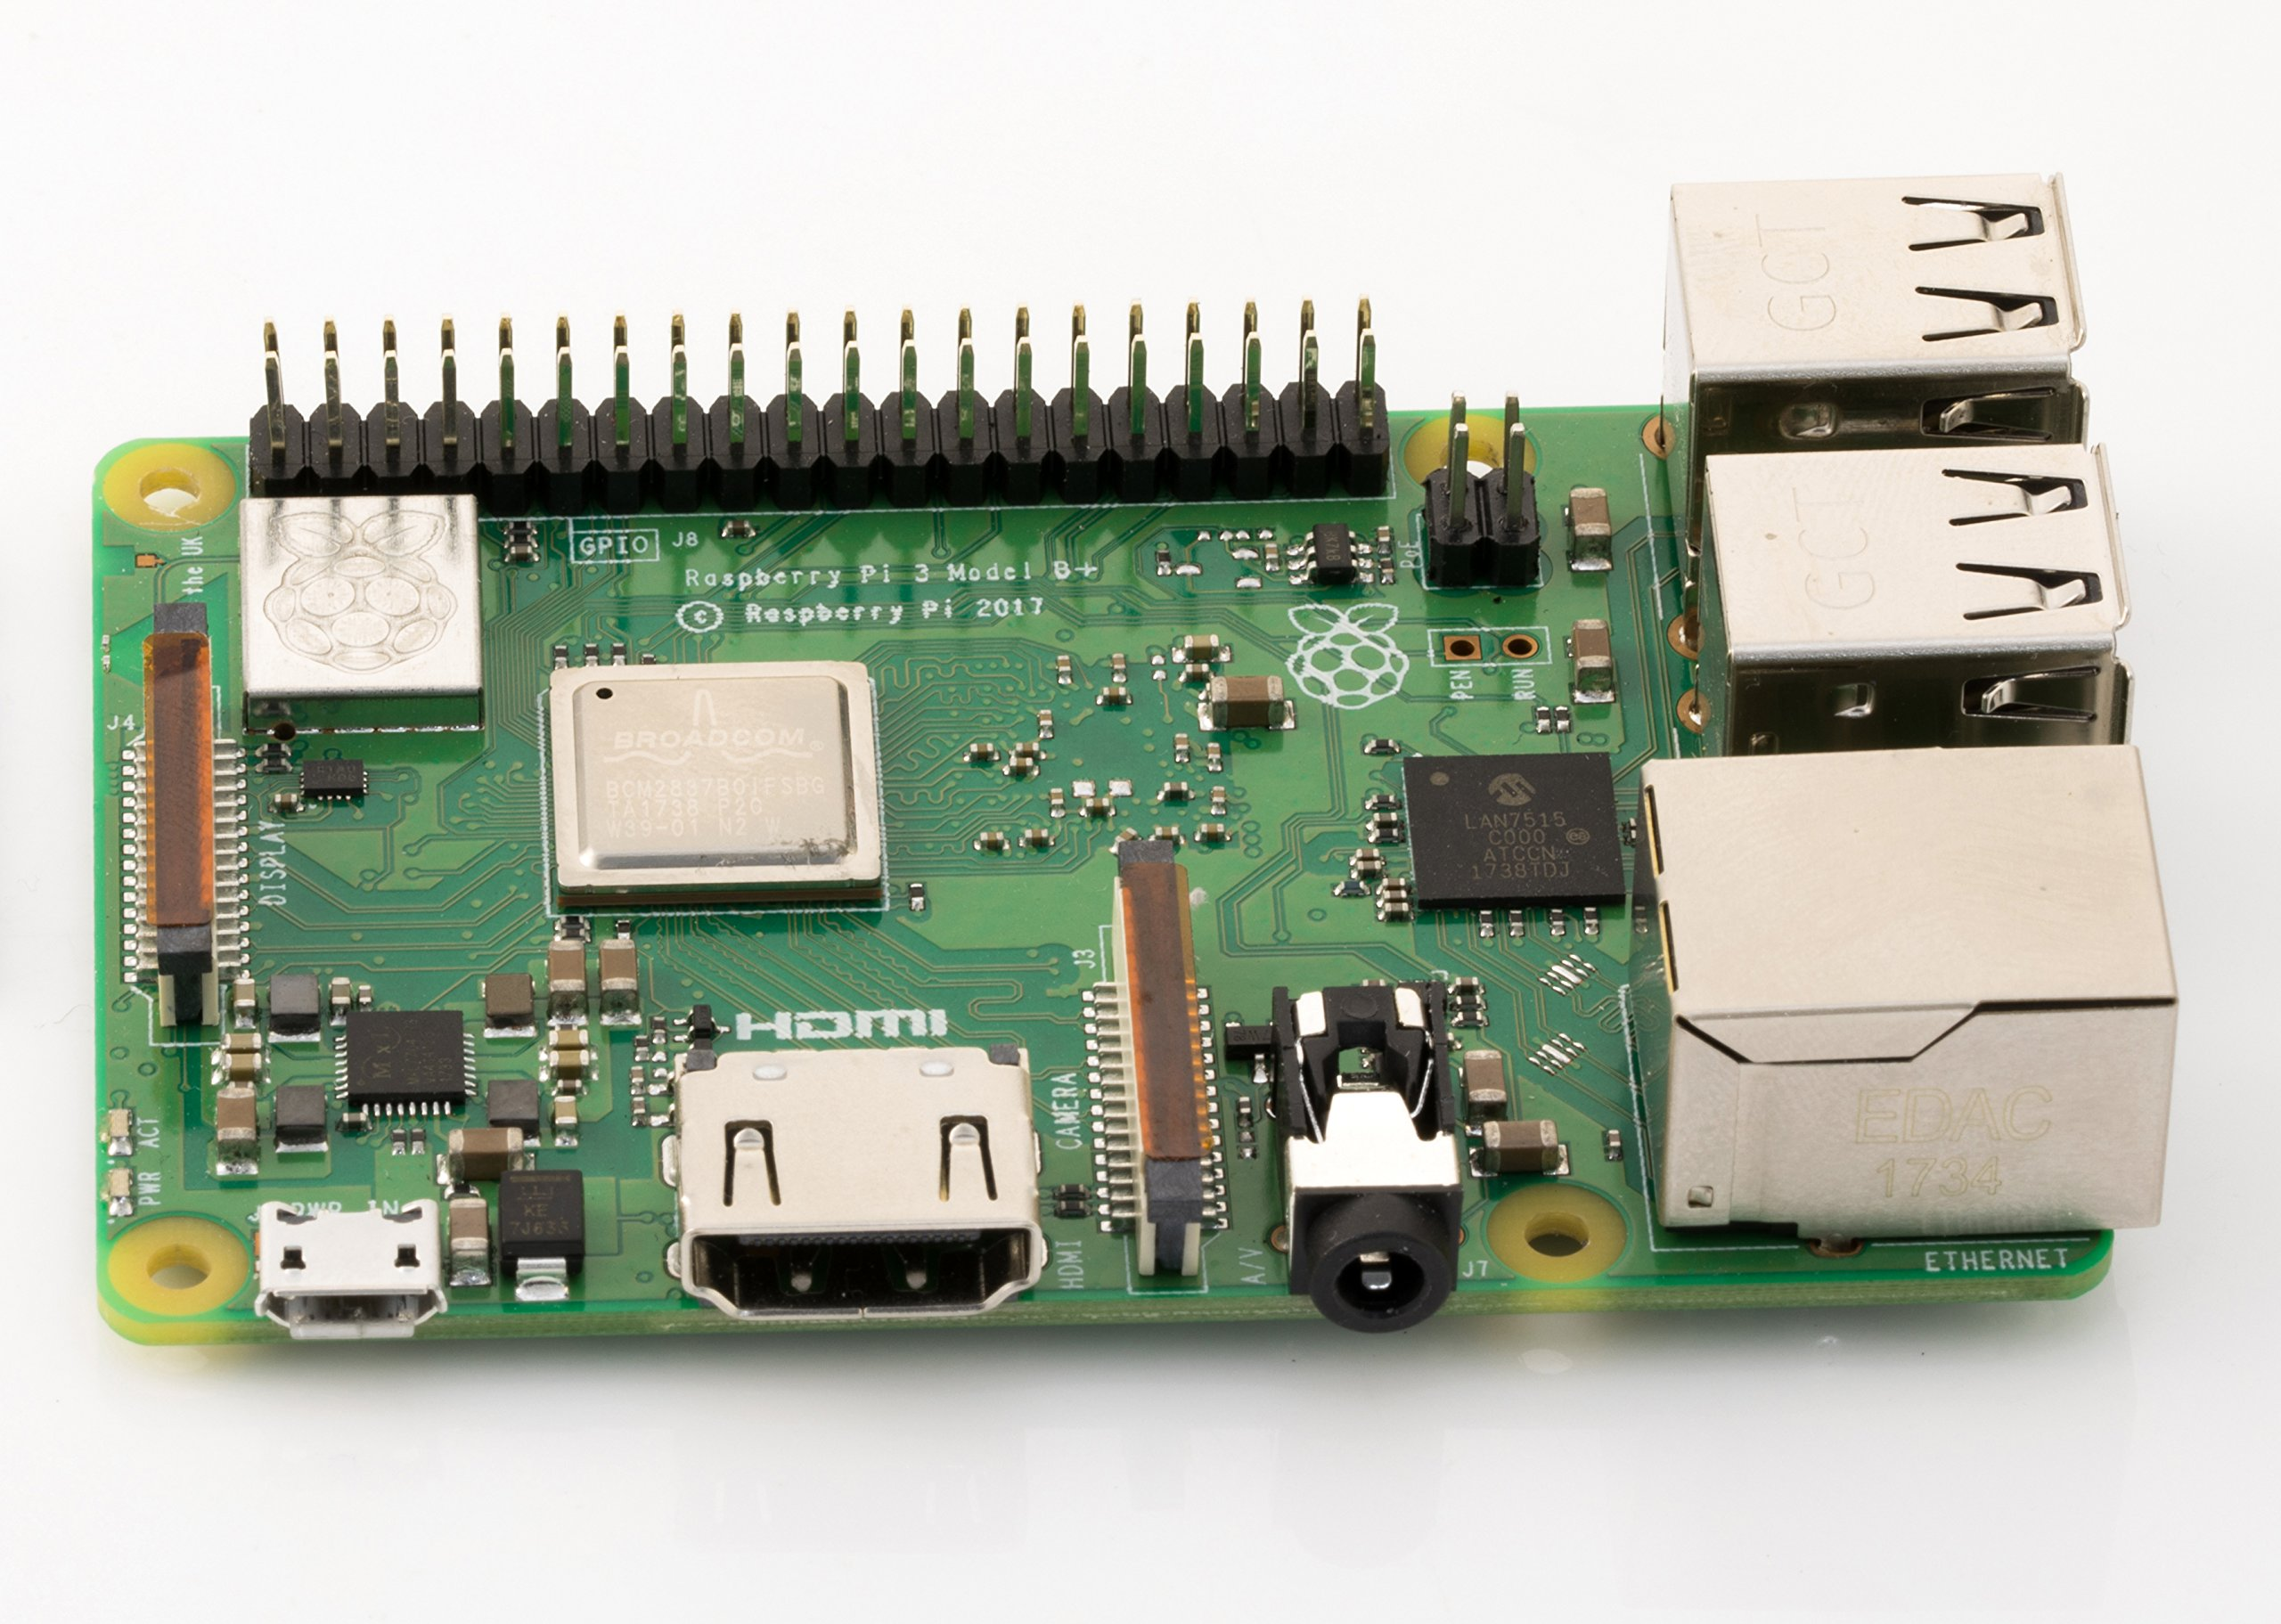 Vilros Raspberry Pi 3 Model B+ (B Plus)-With 2.5A Power Supply [LATEST MODEL 2018] by Vilros (Image #8)